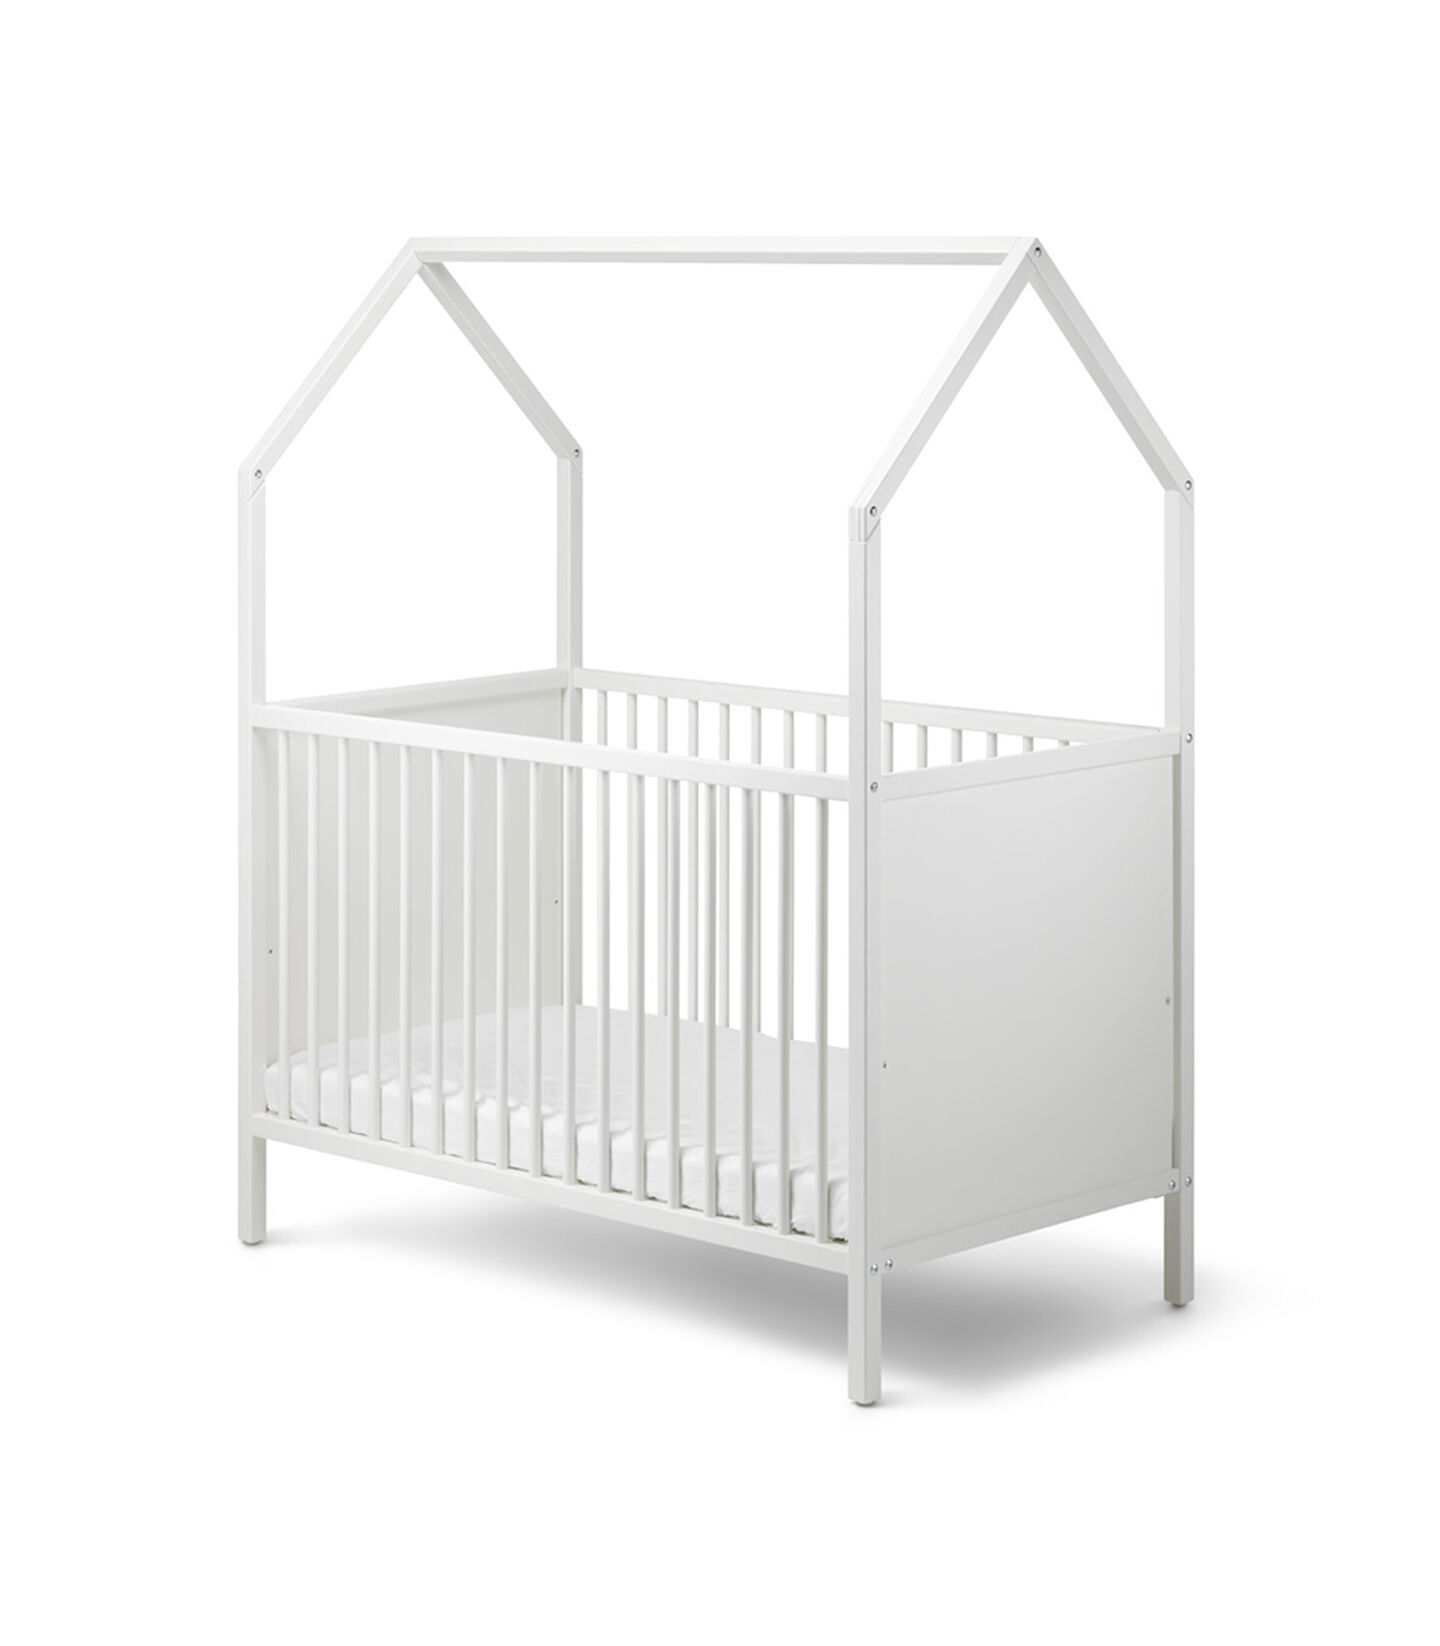 Stokke® Home™ Bed White.